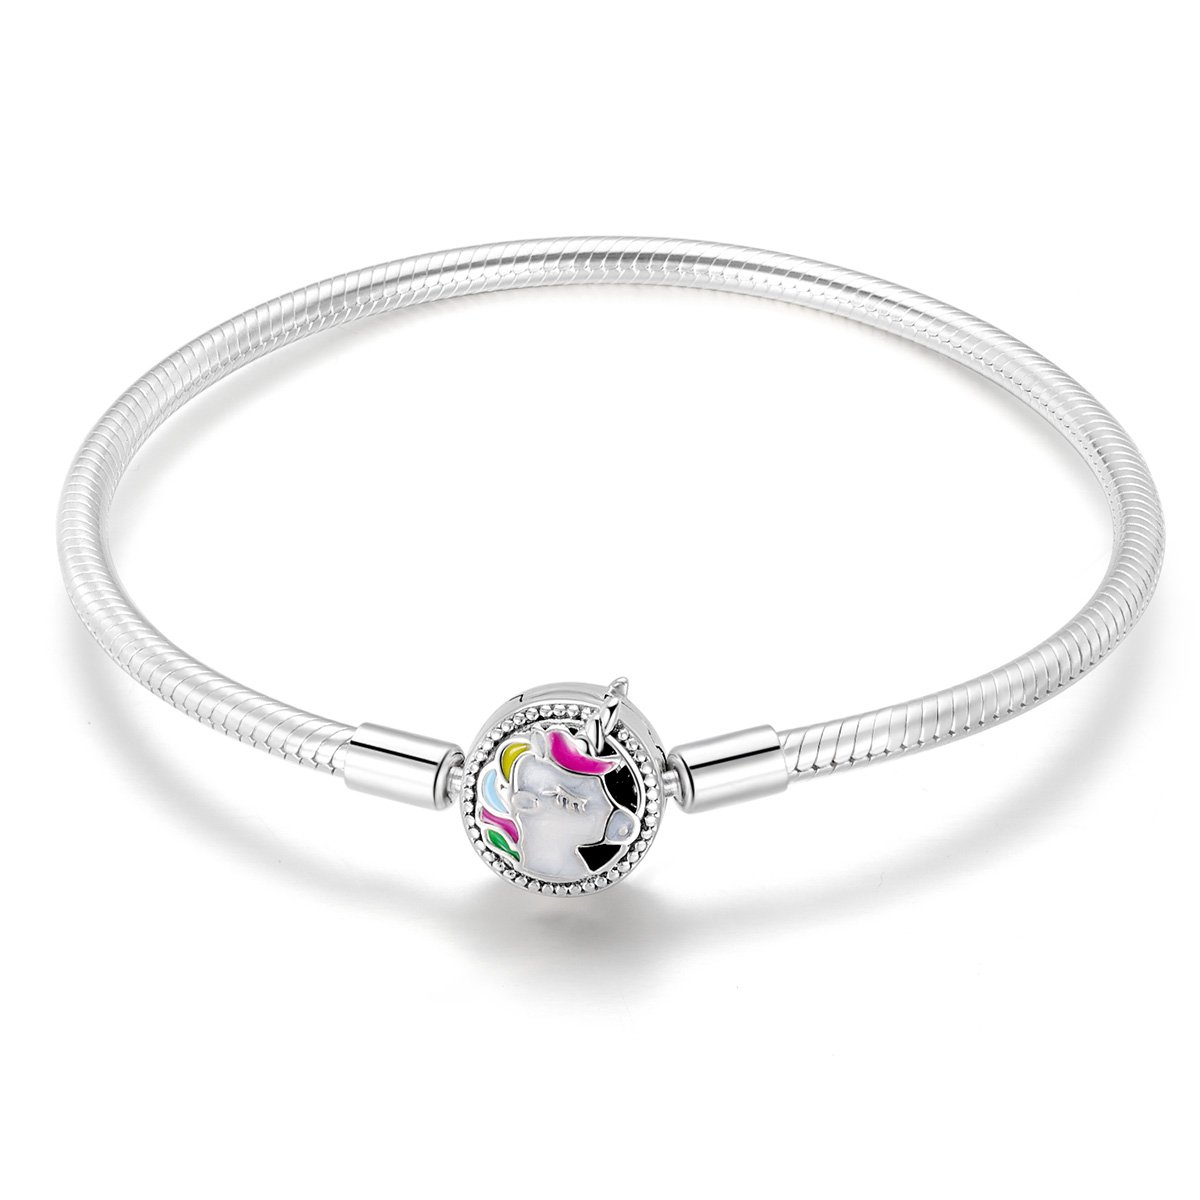 Charm Bracelet, 925 Sterling Silver Charm with Colorful Unicorn Charm Clasp, Snake Chain Bracelet for Women Girls Teen, 7.5inch, BJ09083